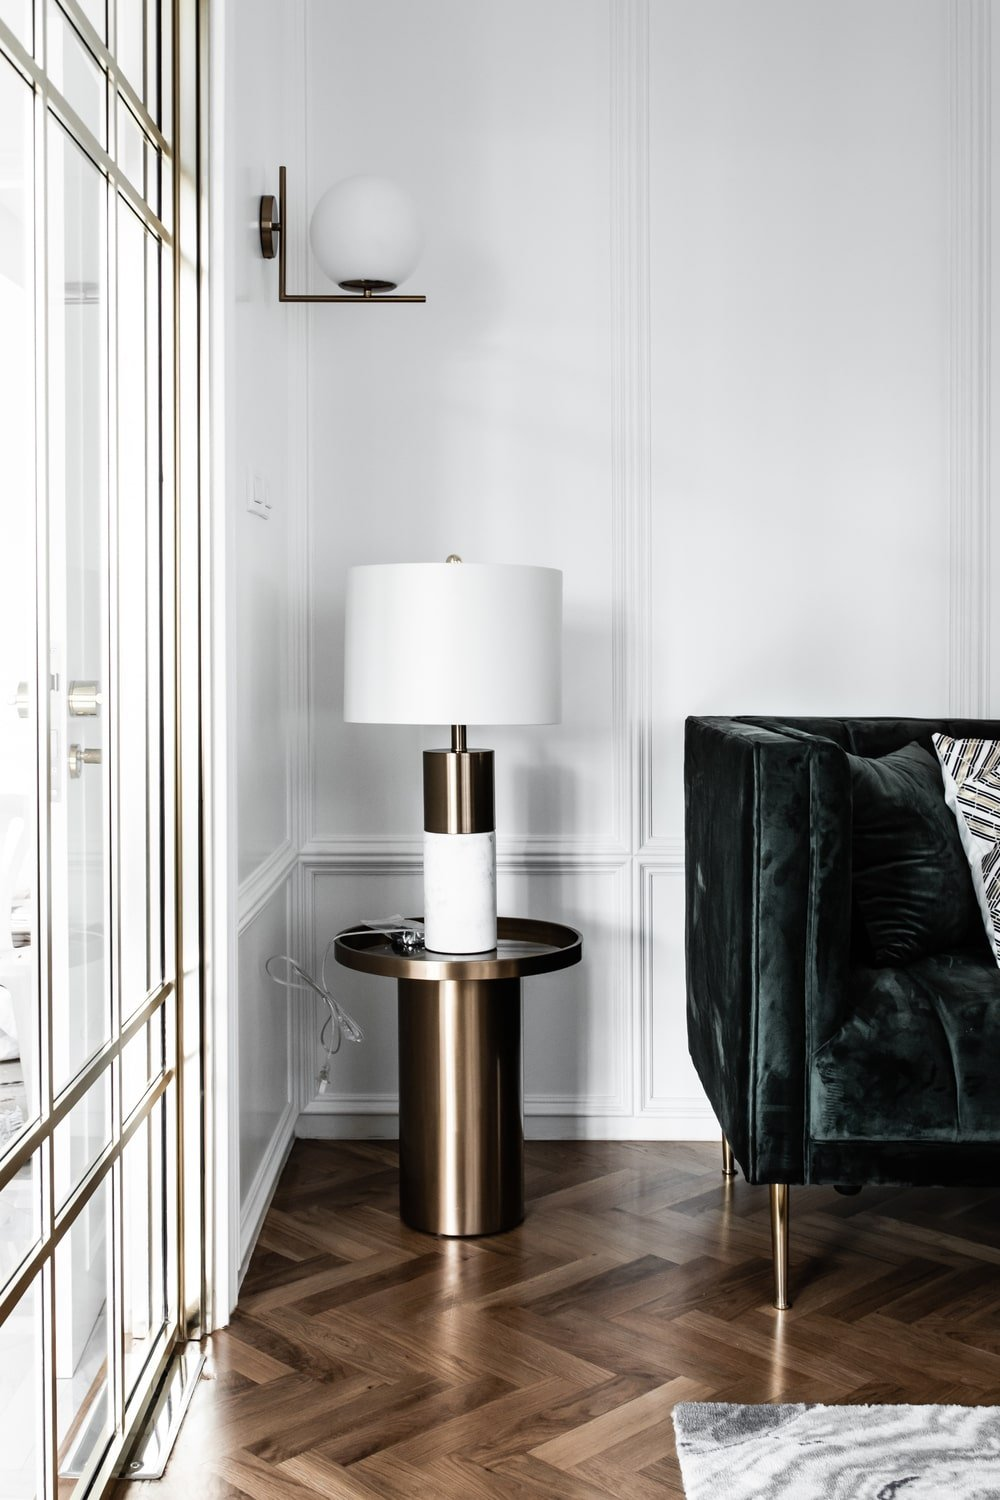 This is the other end table of the sofa that also supports a table lamp.